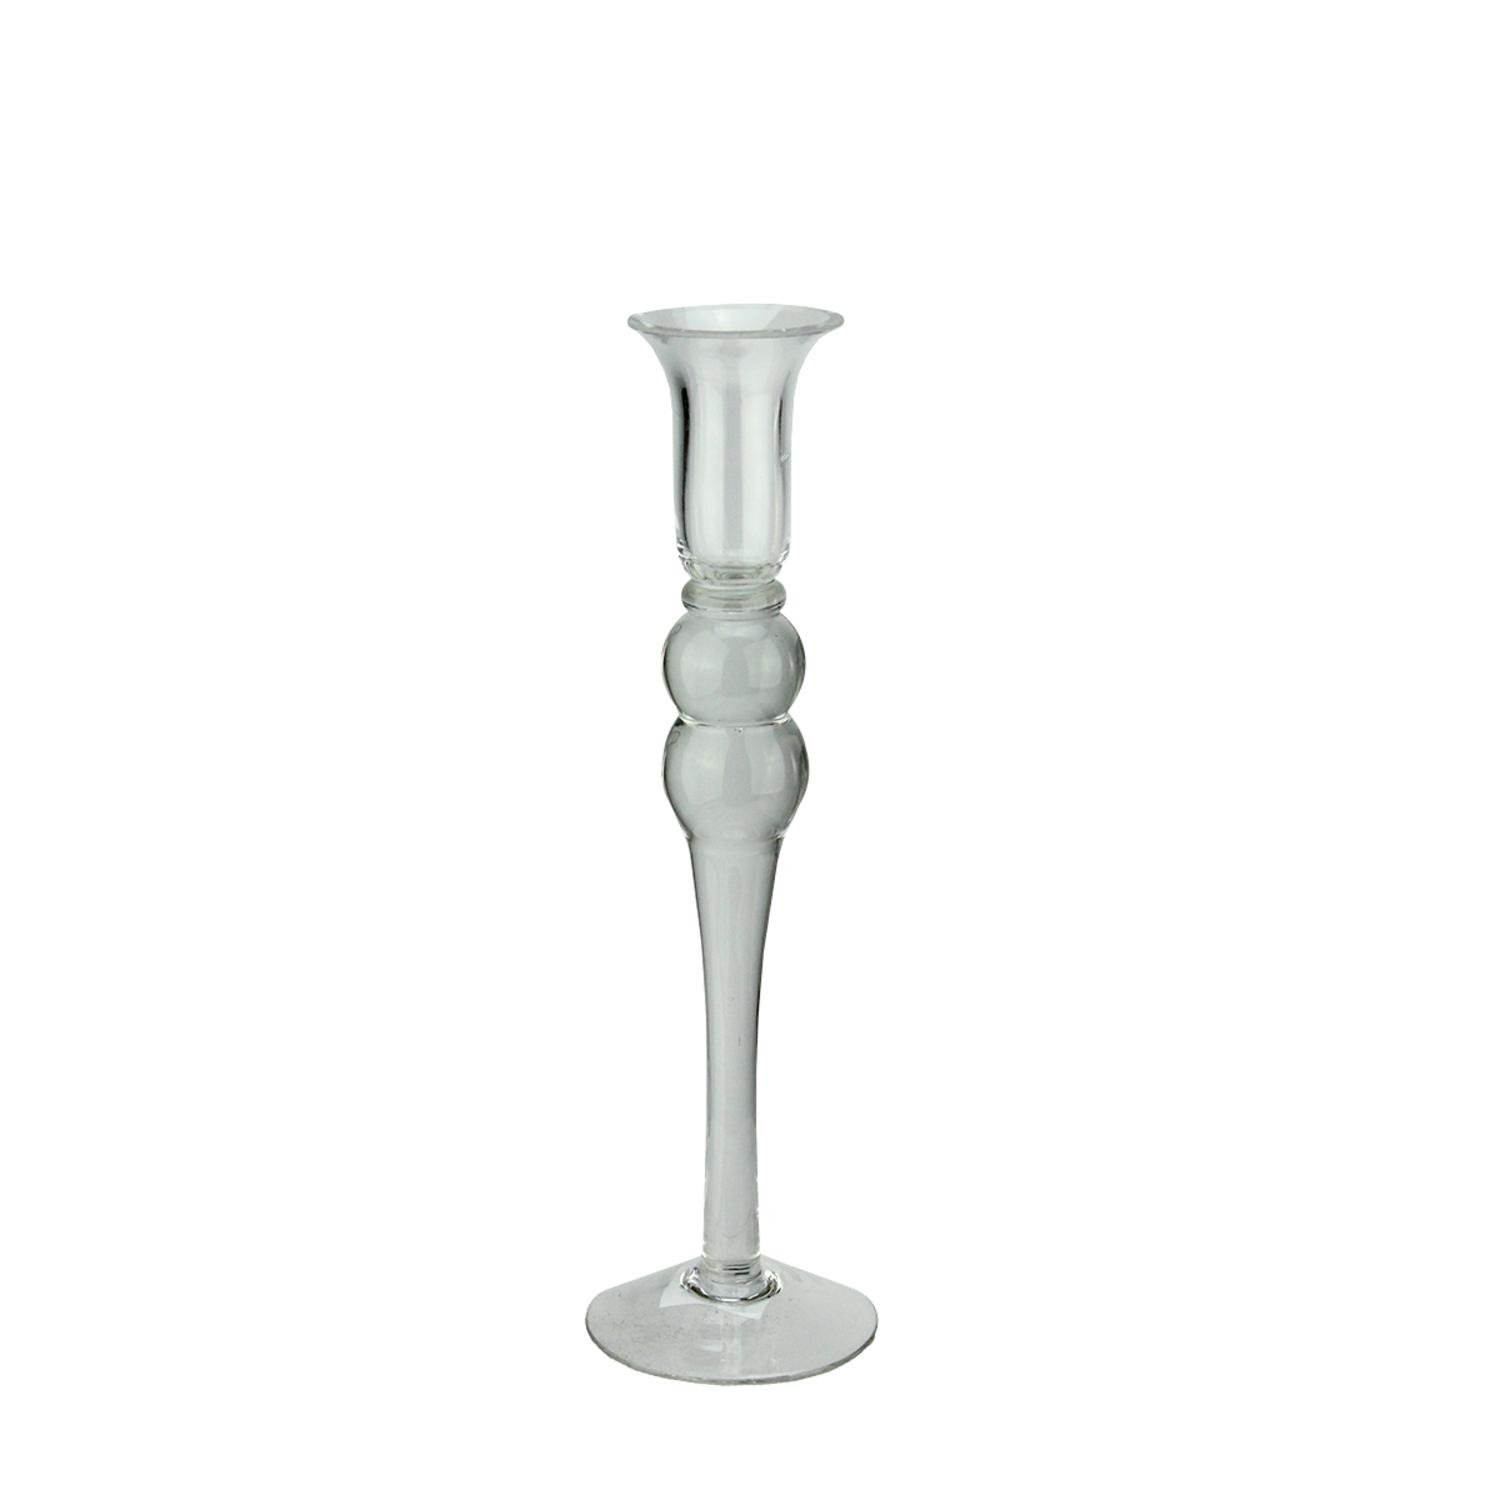 ''16.25'''' Transparent Glass TAPER CANDLE Holder''